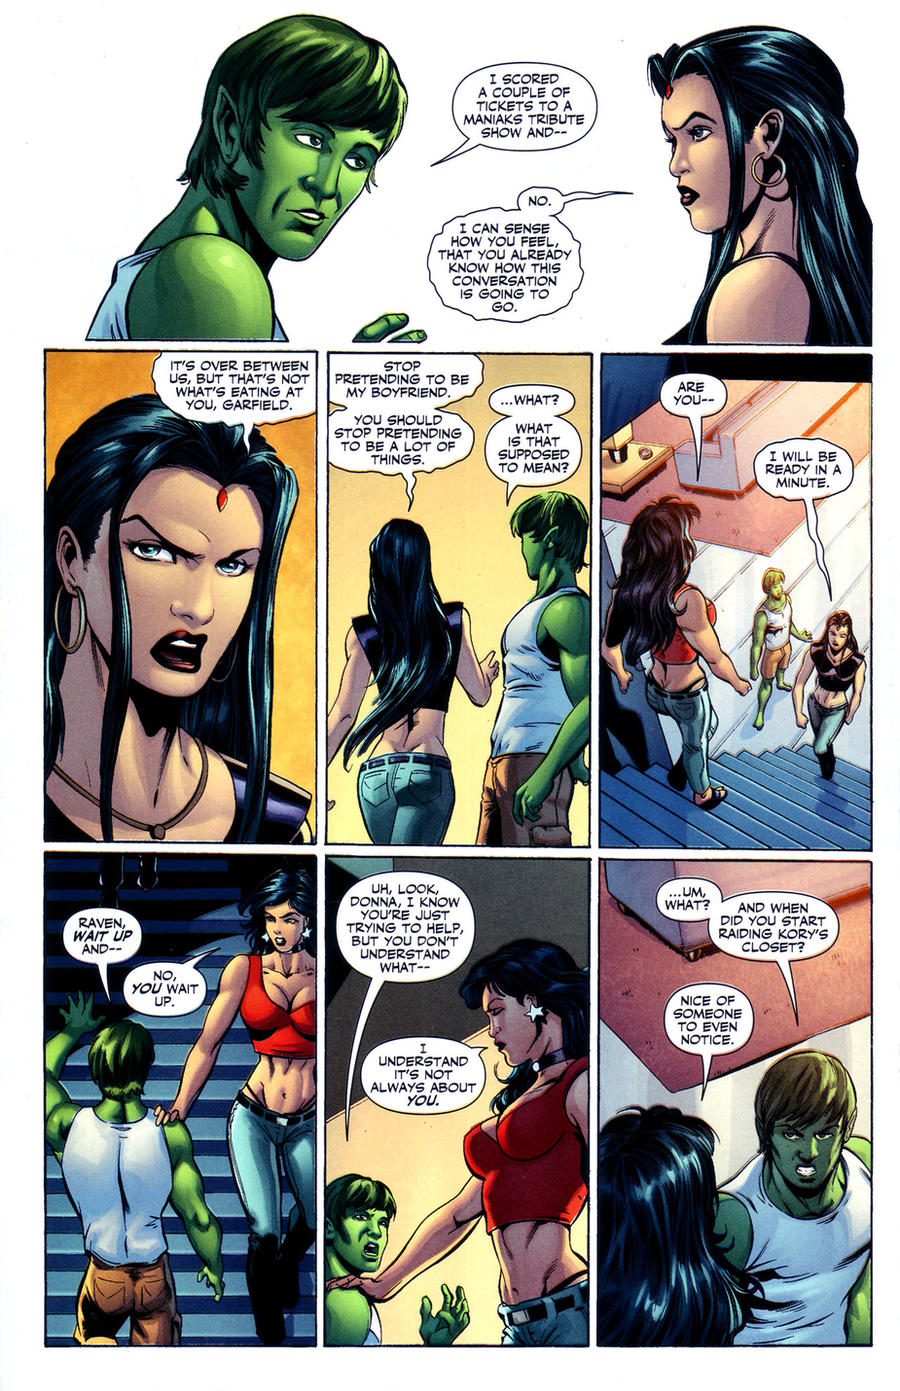 Raven Superhero And Beast Boy Raven Rejects Beast Boy